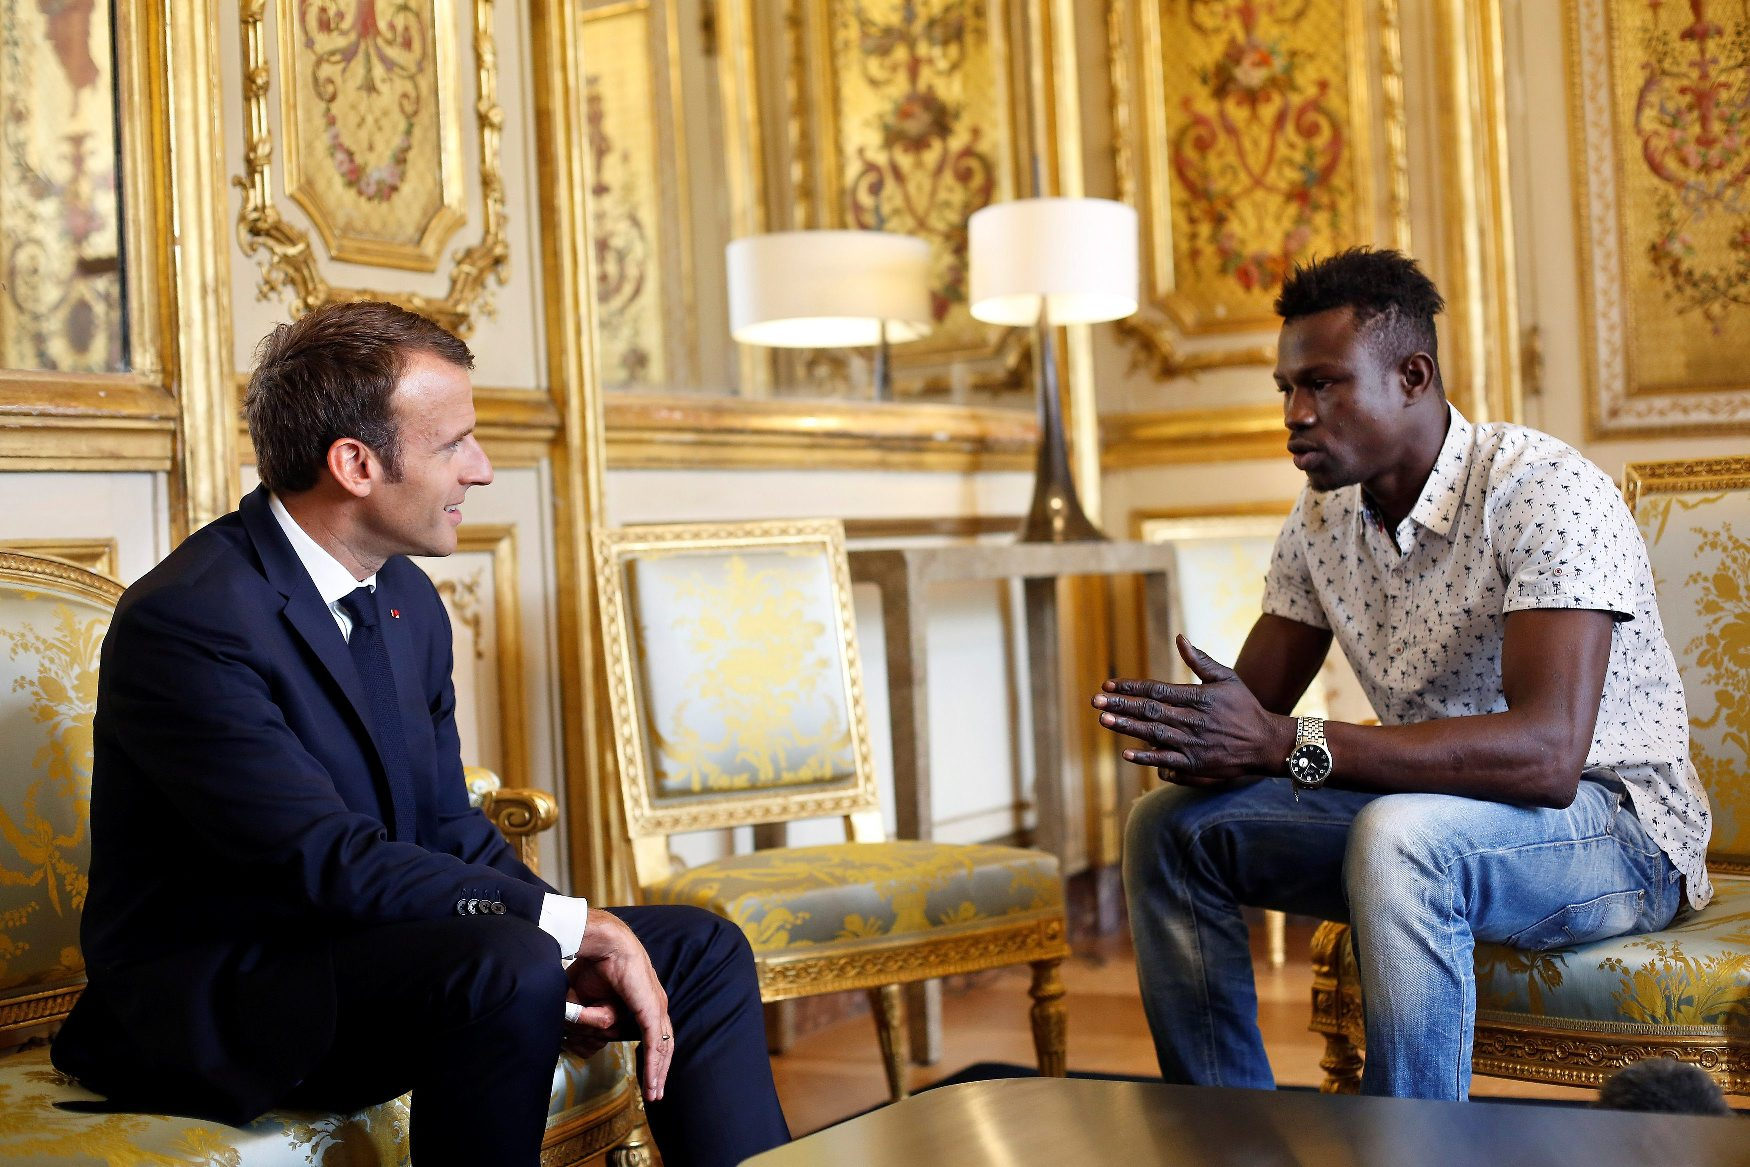 French President Emmanuel Macron (L) meets with Mamoudou Gassama, 22, from Mali, at the Elysee Palace in Paris, France, May 28, 2018. Mamoudou Gassama living illegally in France is being honored by Macron for scaling an apartment building over the weekend to save a 4-year-old child dangling from a fifth-floor balcony. Thibault Camus/Pool via Reuters